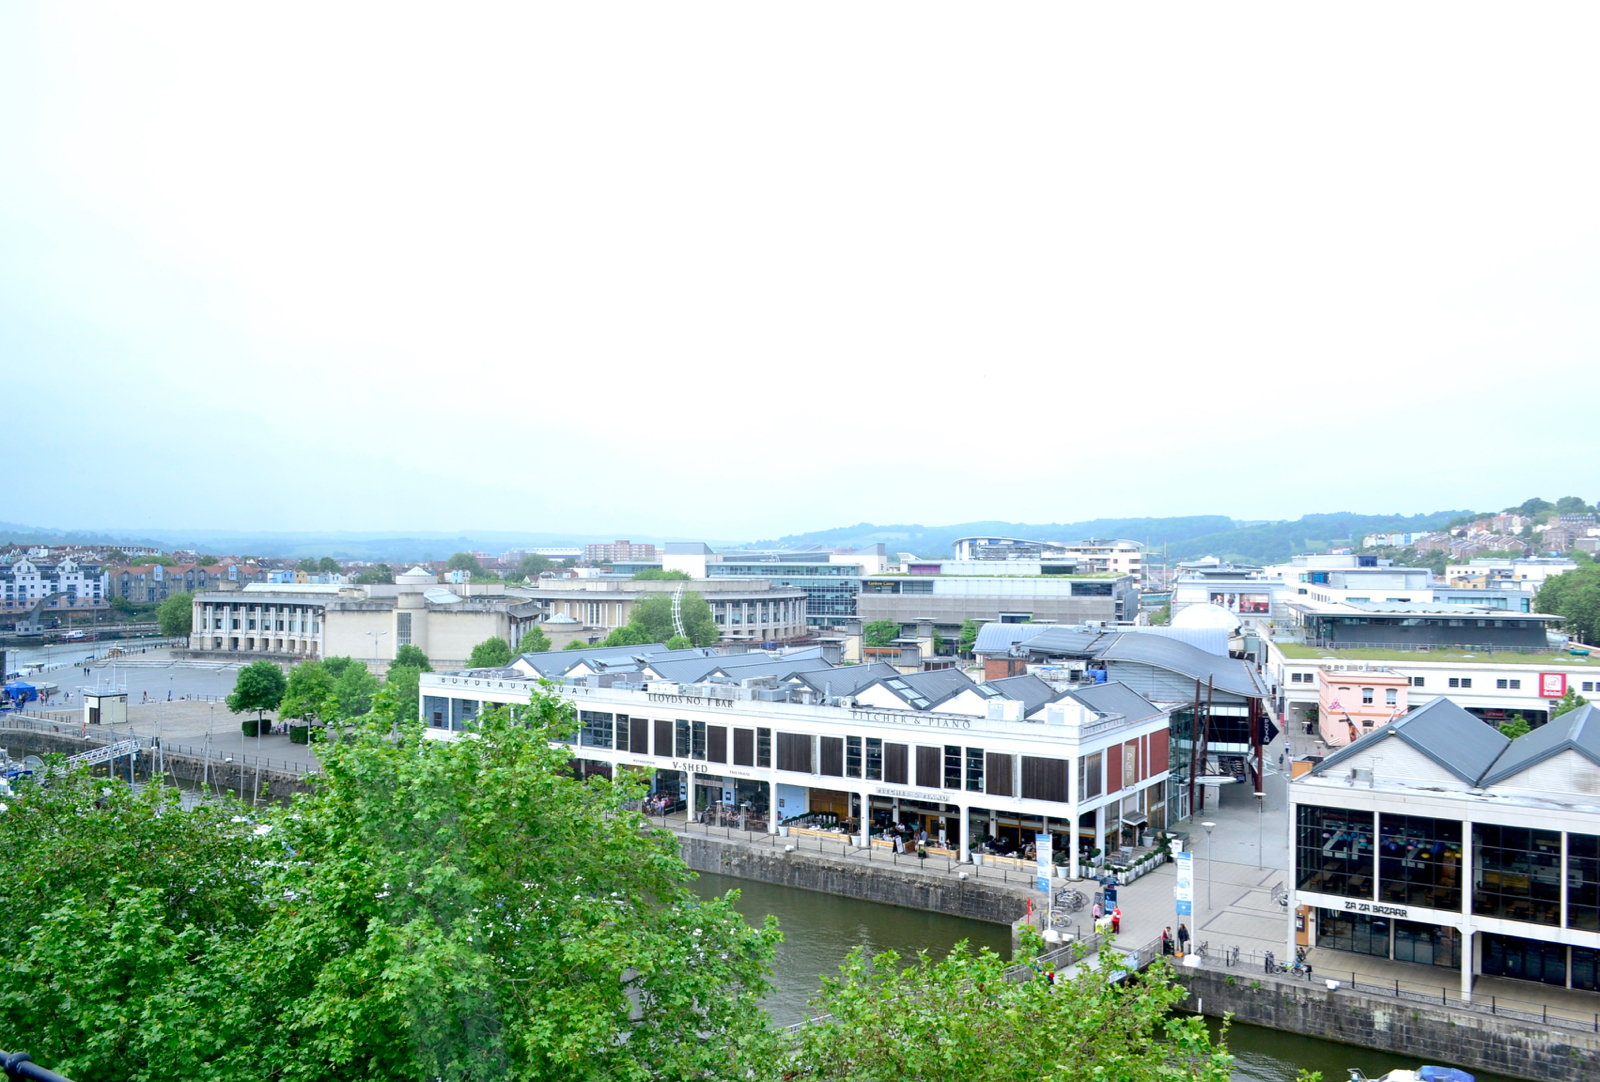 The Bristol view from the top floor room hotel